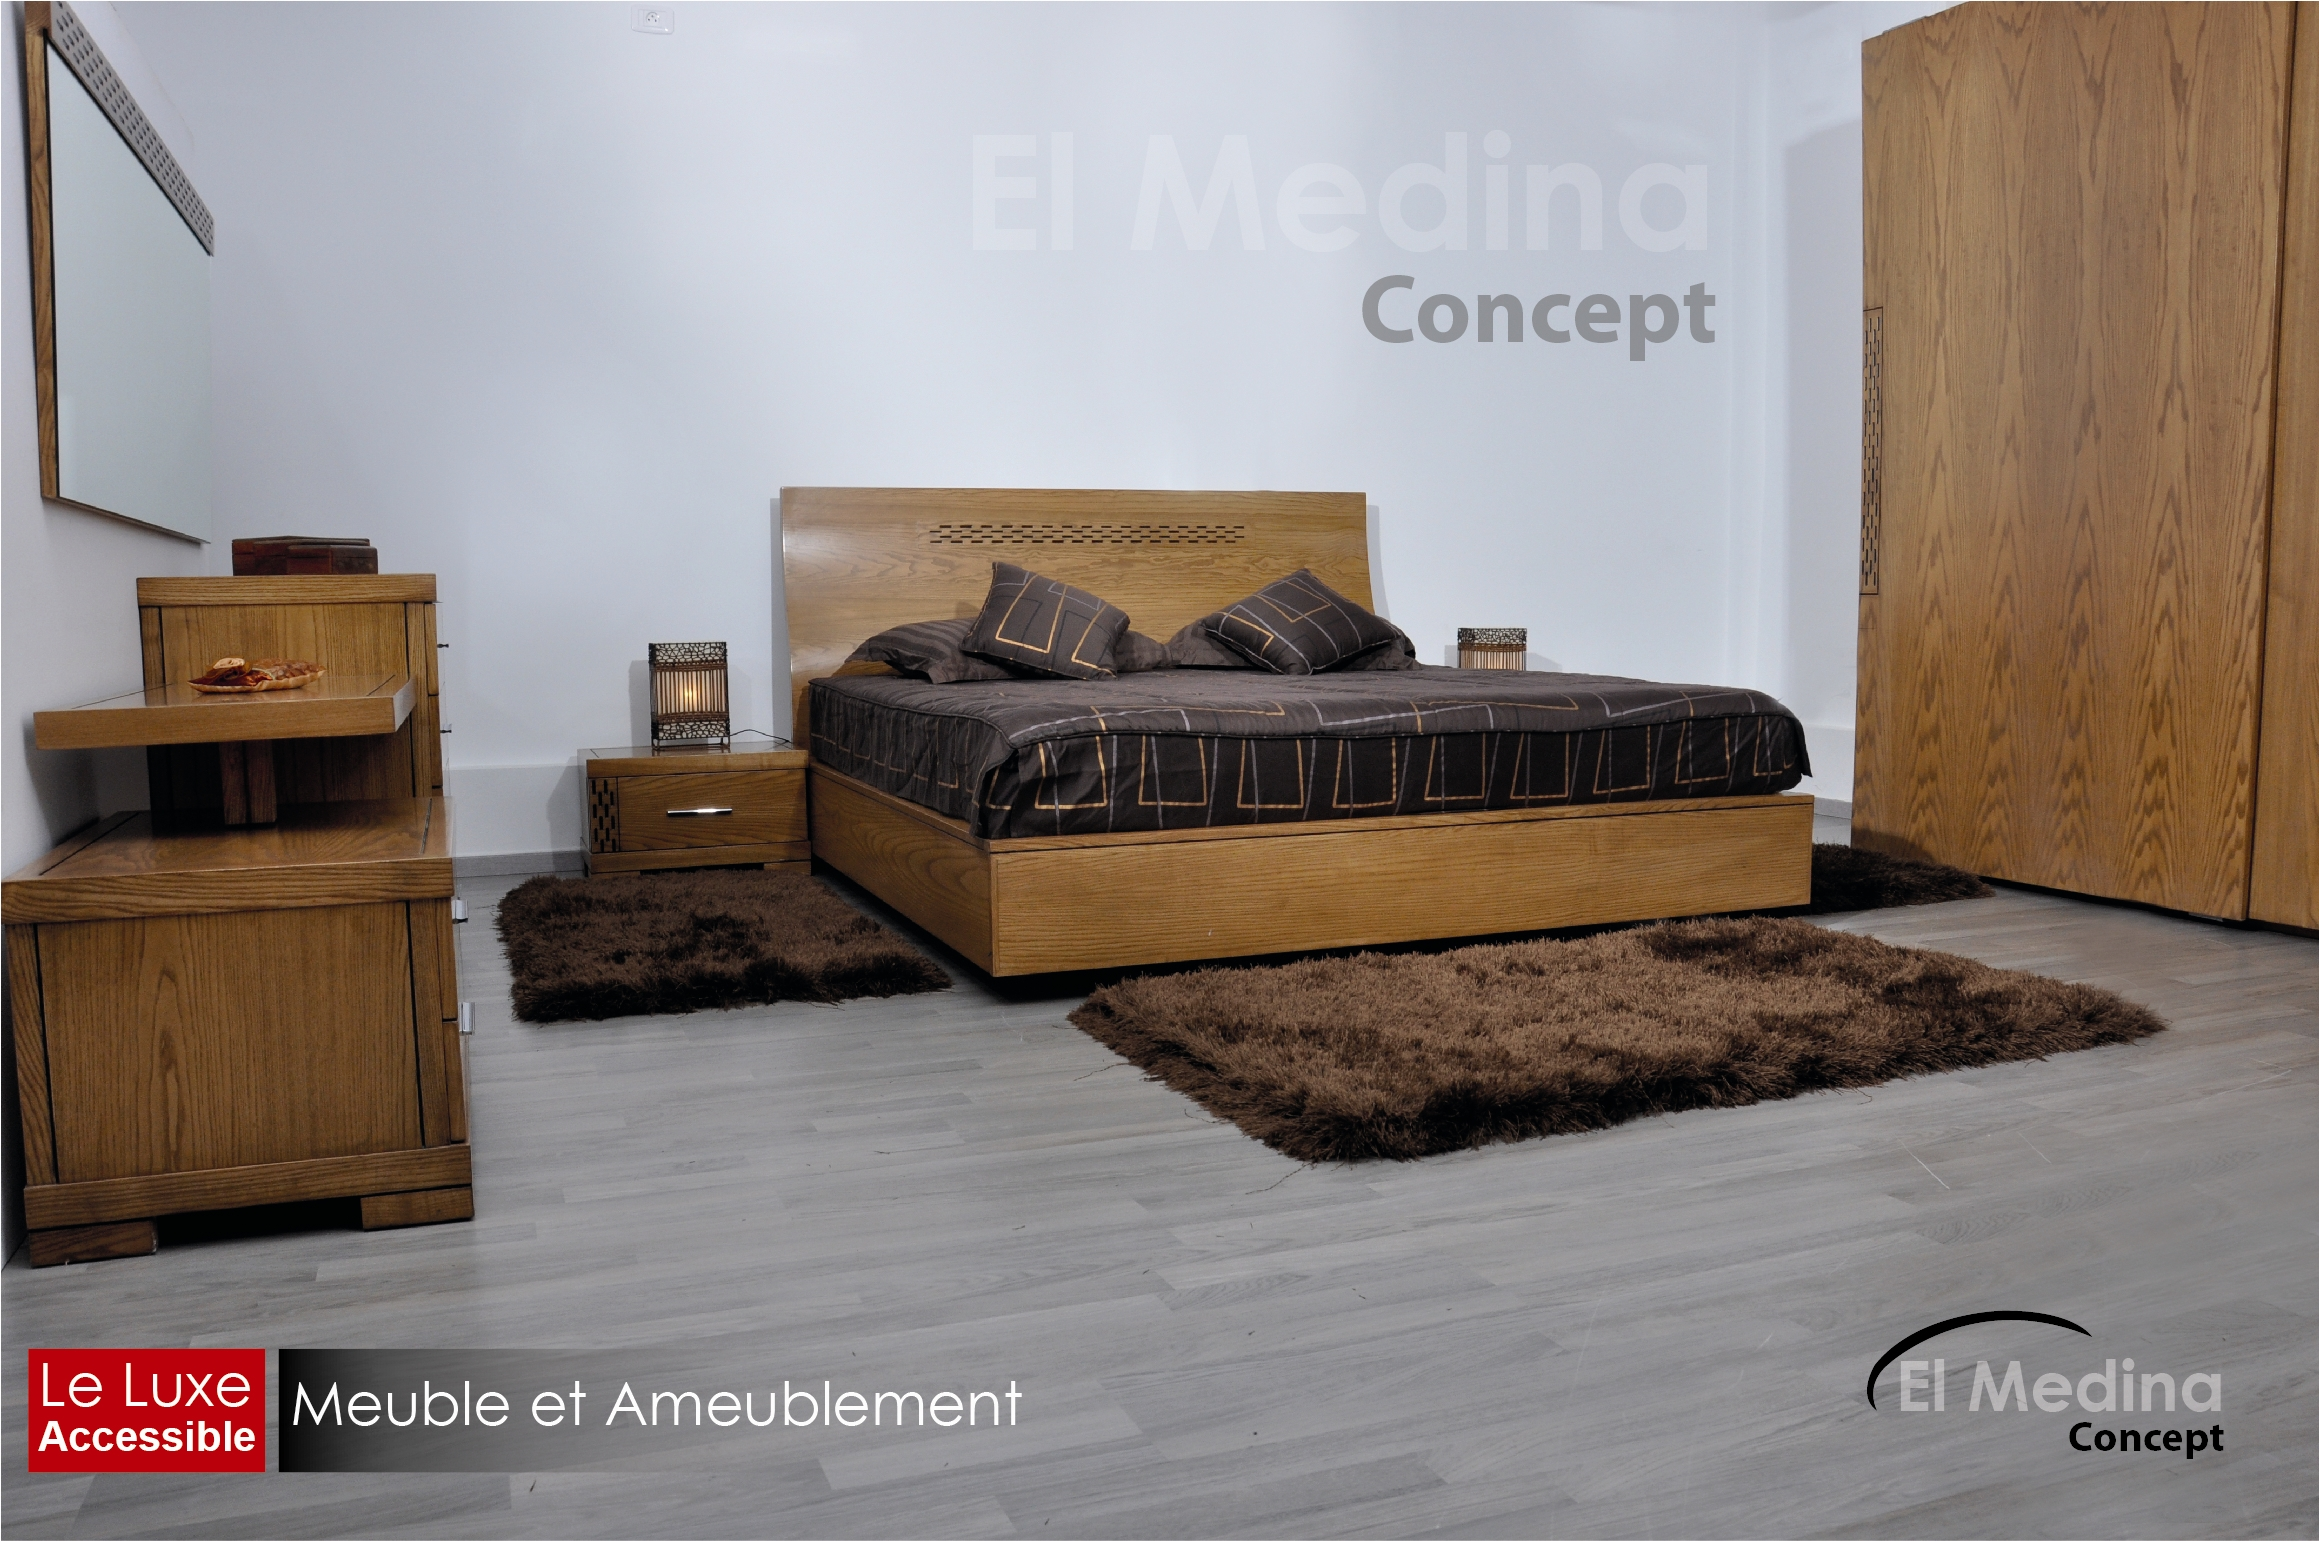 El medina concept for Model de chambre a coucher moderne